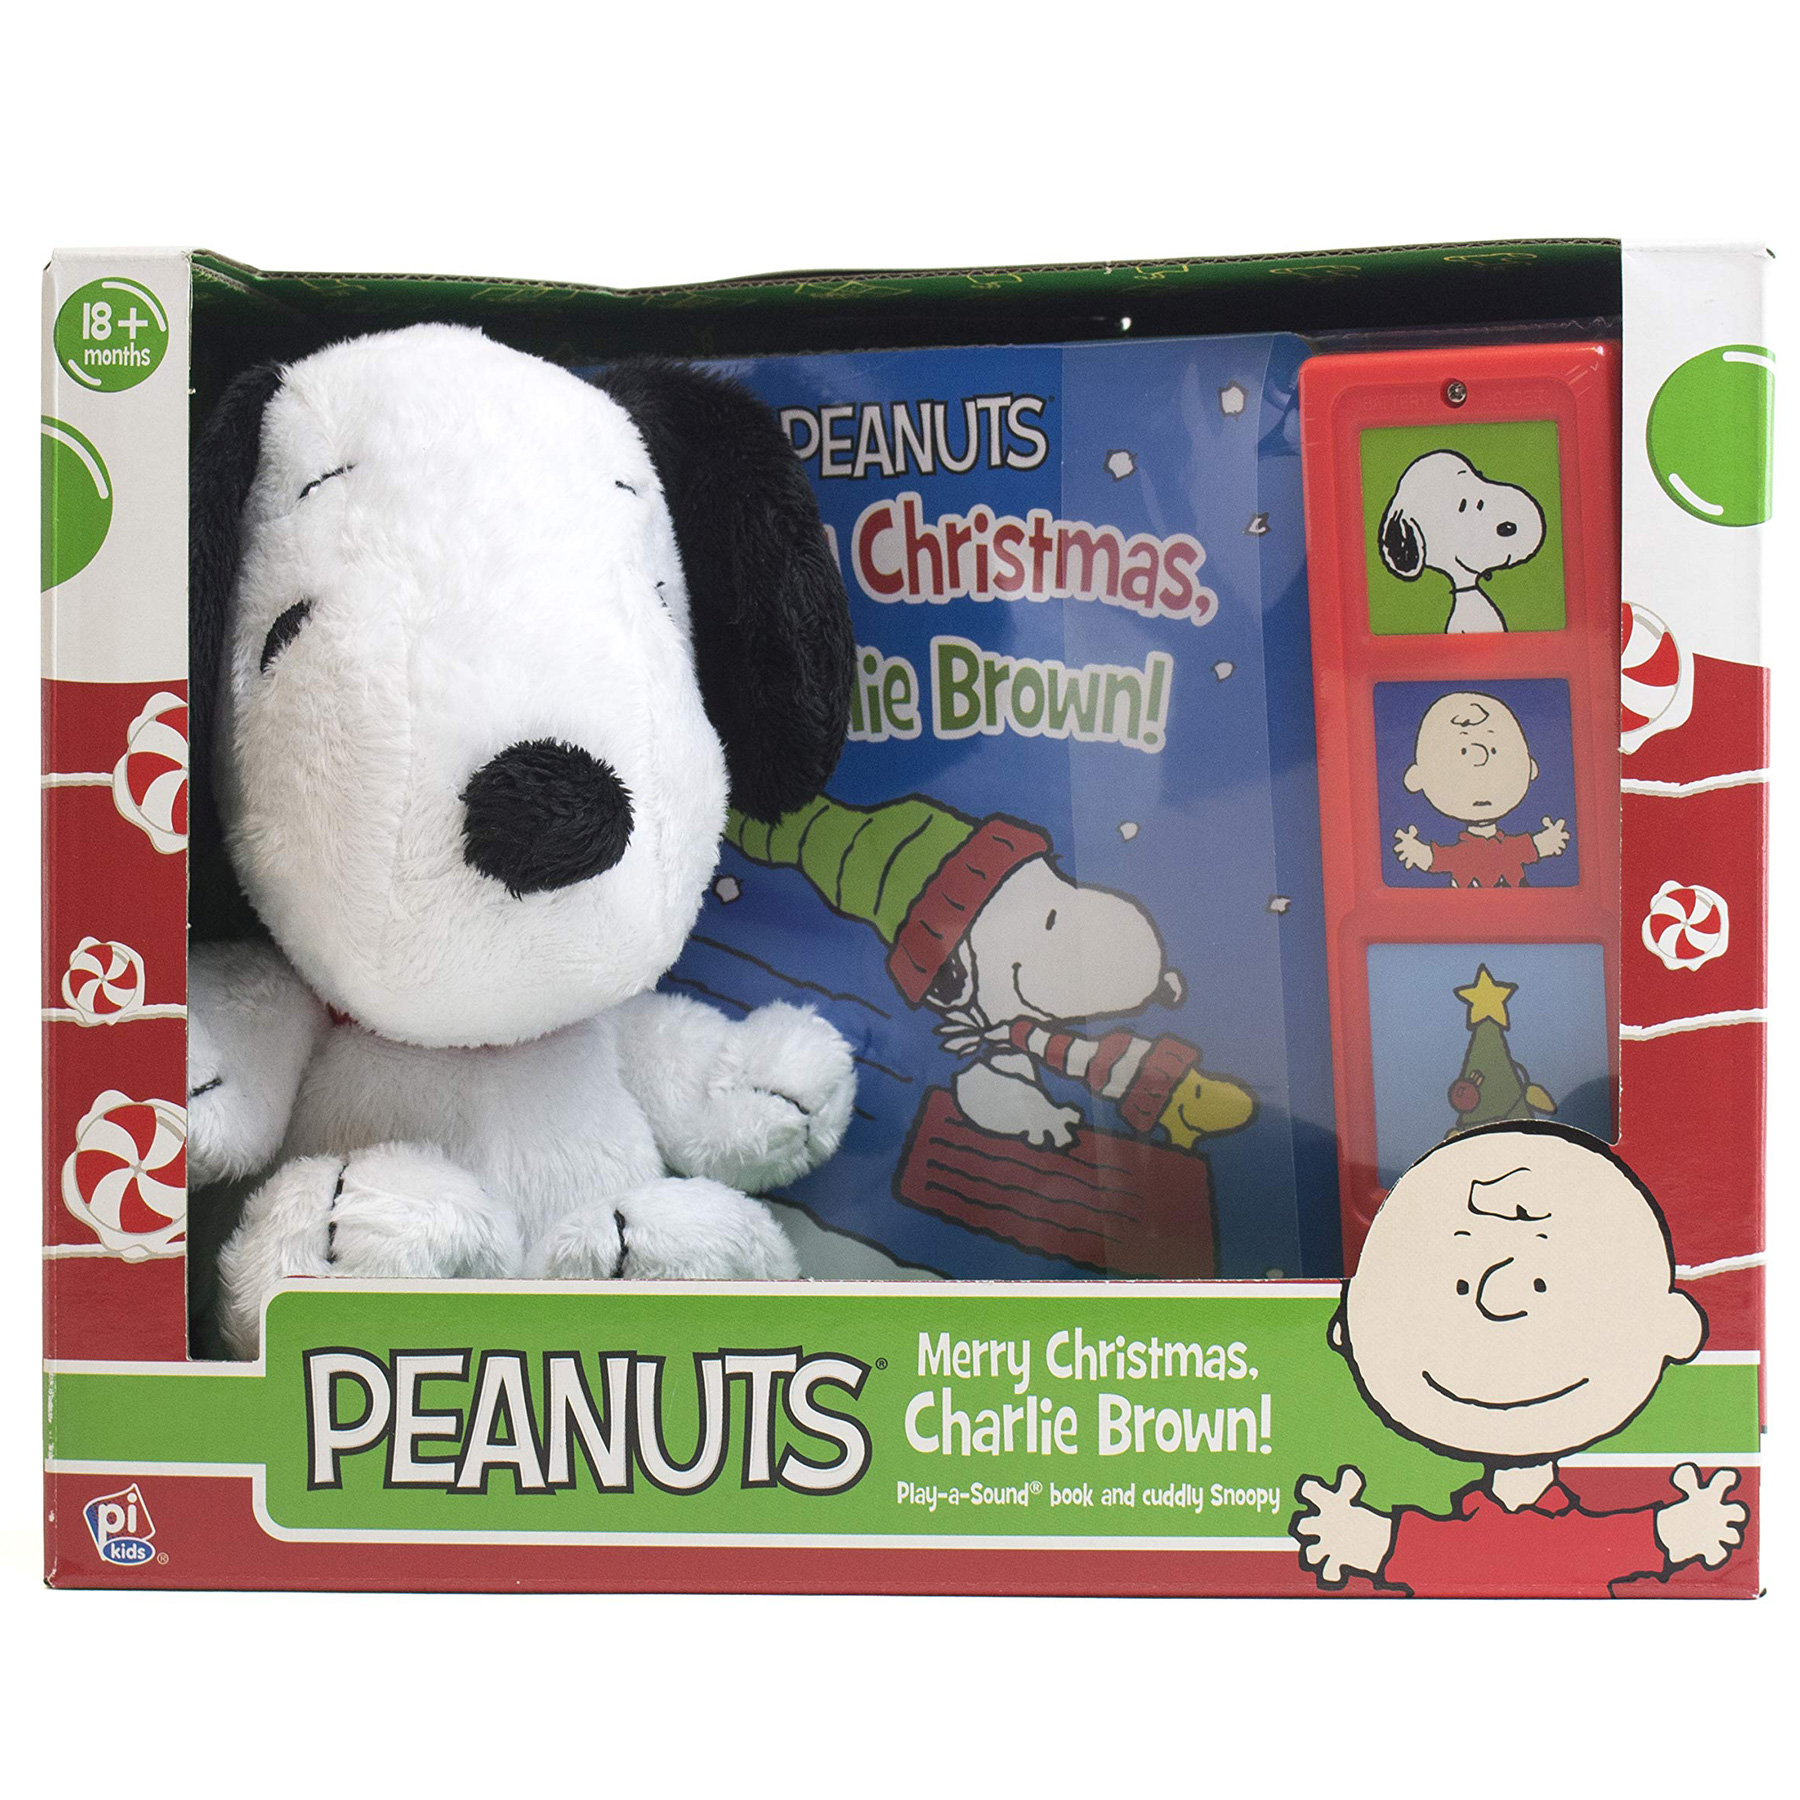 Merry Christmas Charlie Brown.79 Off Peanuts Merry Christmas Charlie Brown W Snoopy